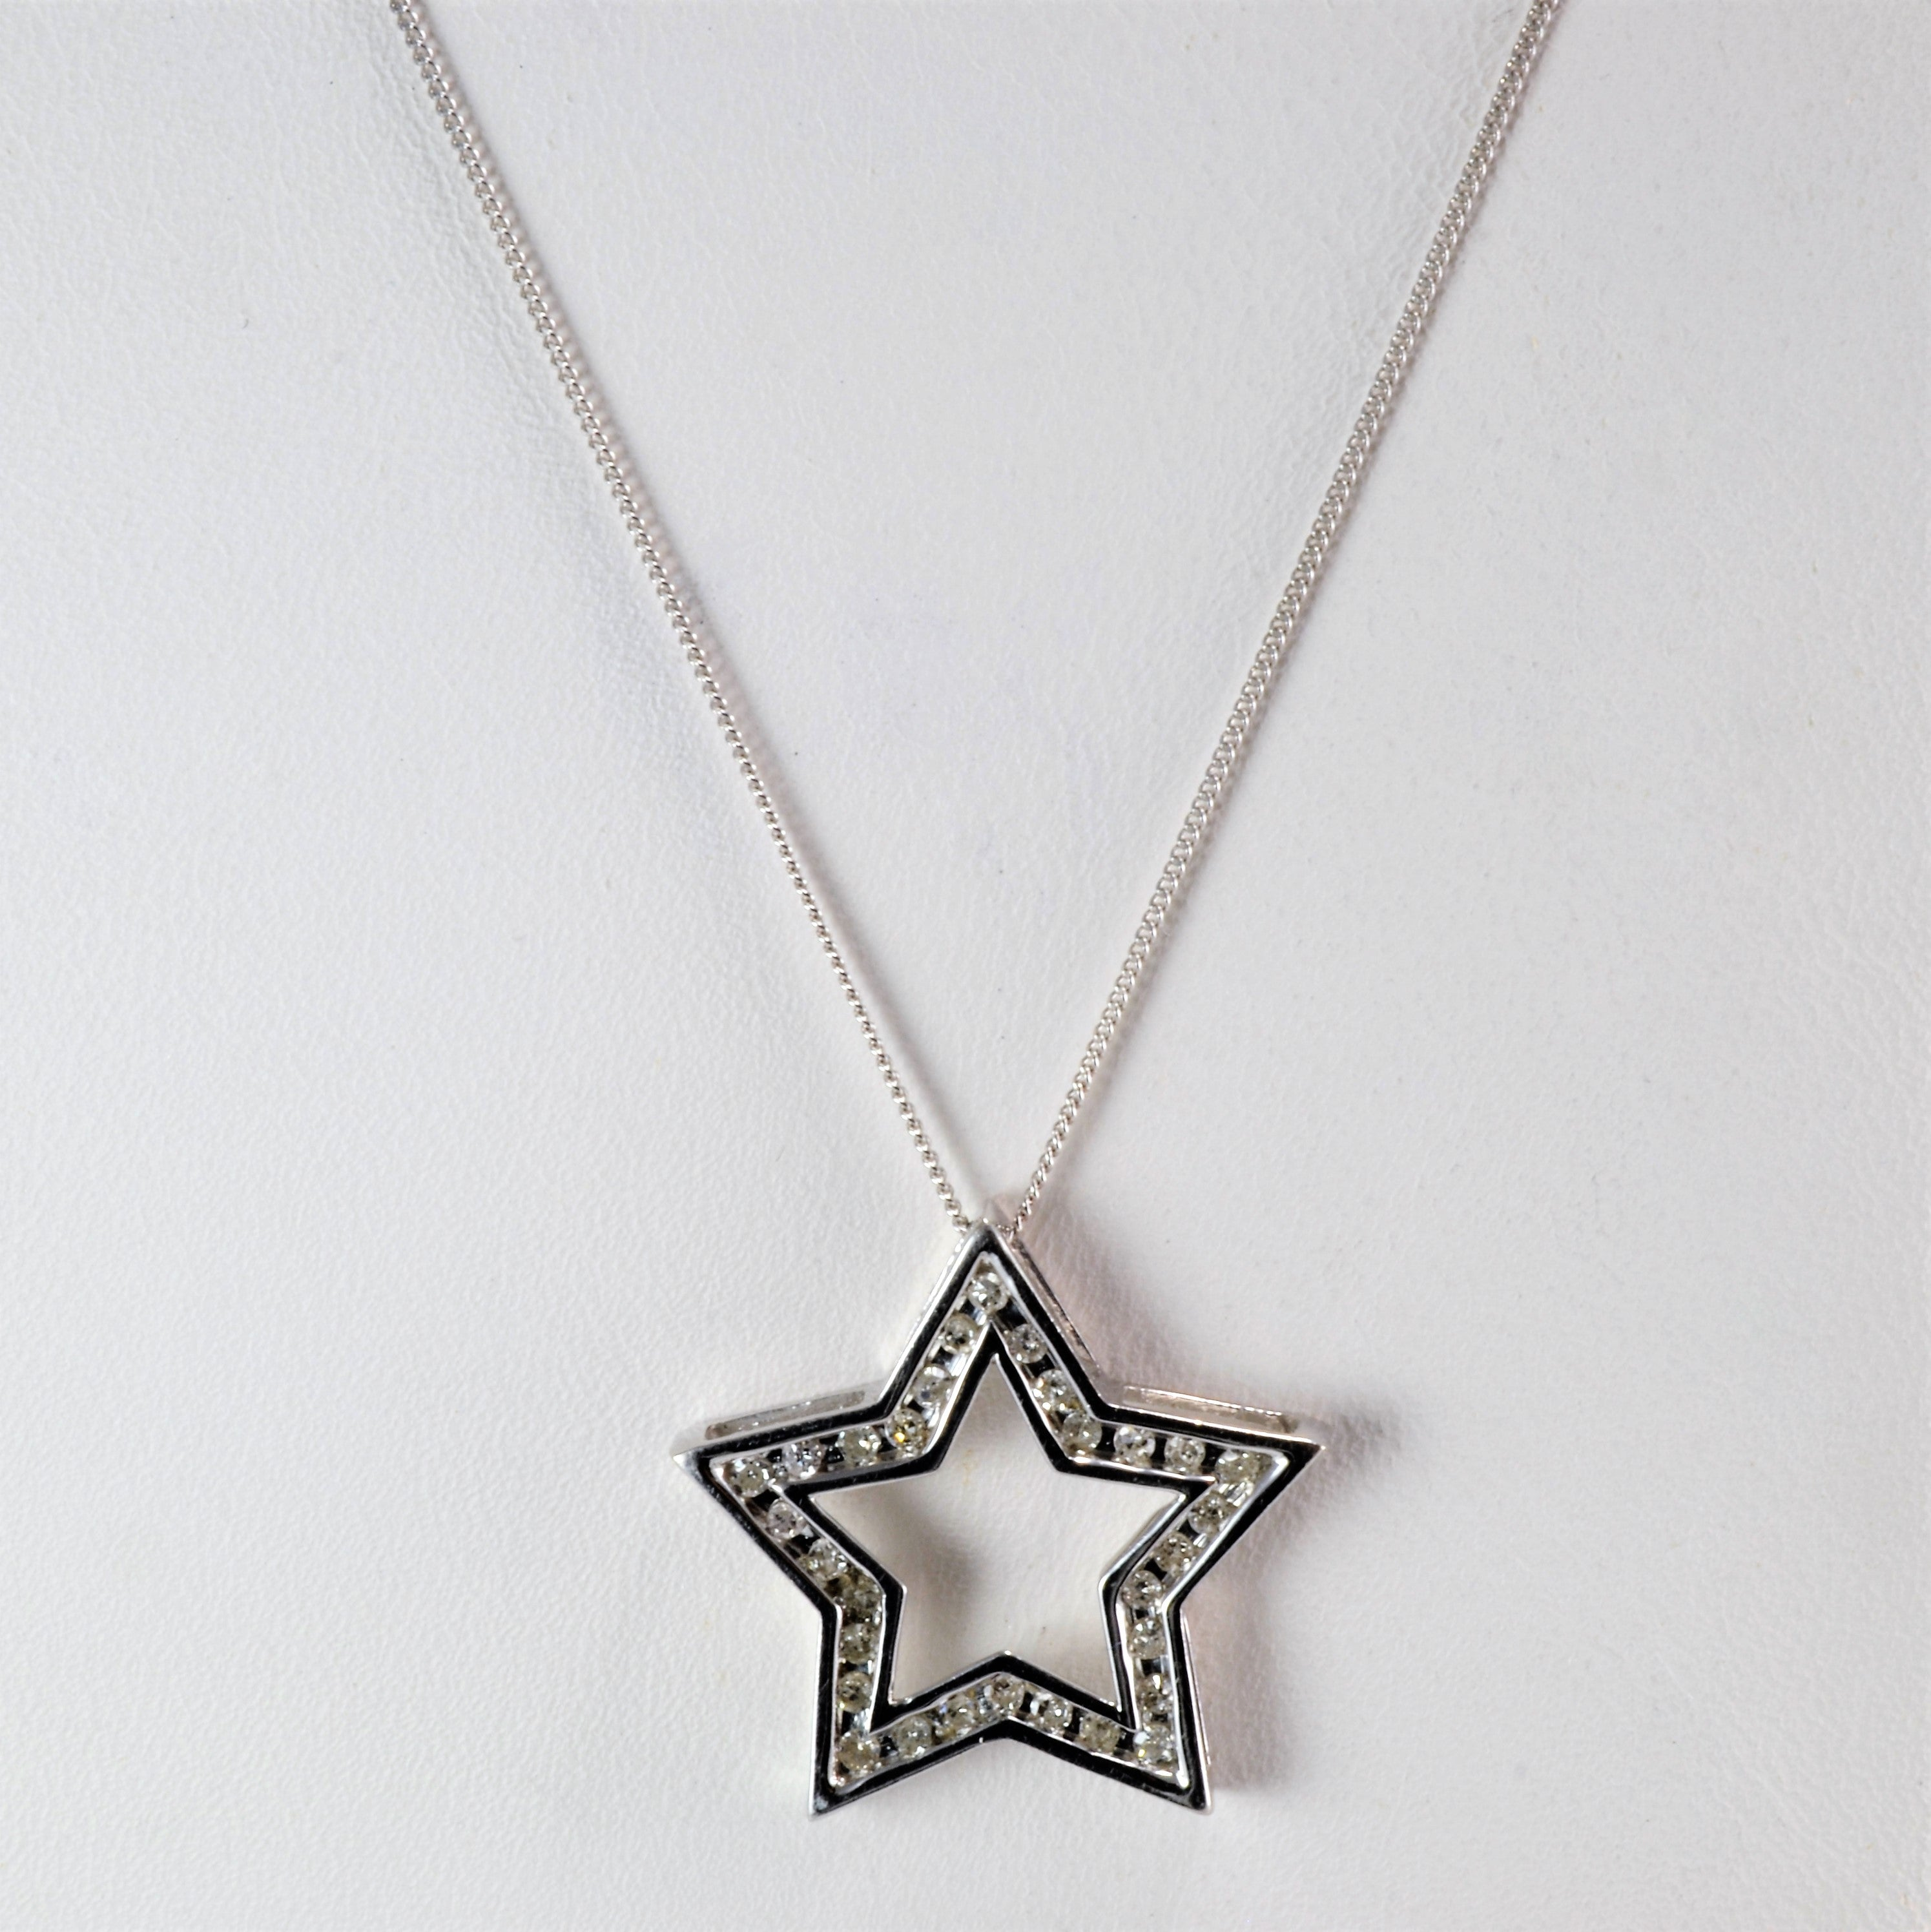 Channel diamond star pendant necklace 030 ctw 17 100 ways channel diamond star pendant necklace 030 ctw 17 aloadofball Choice Image